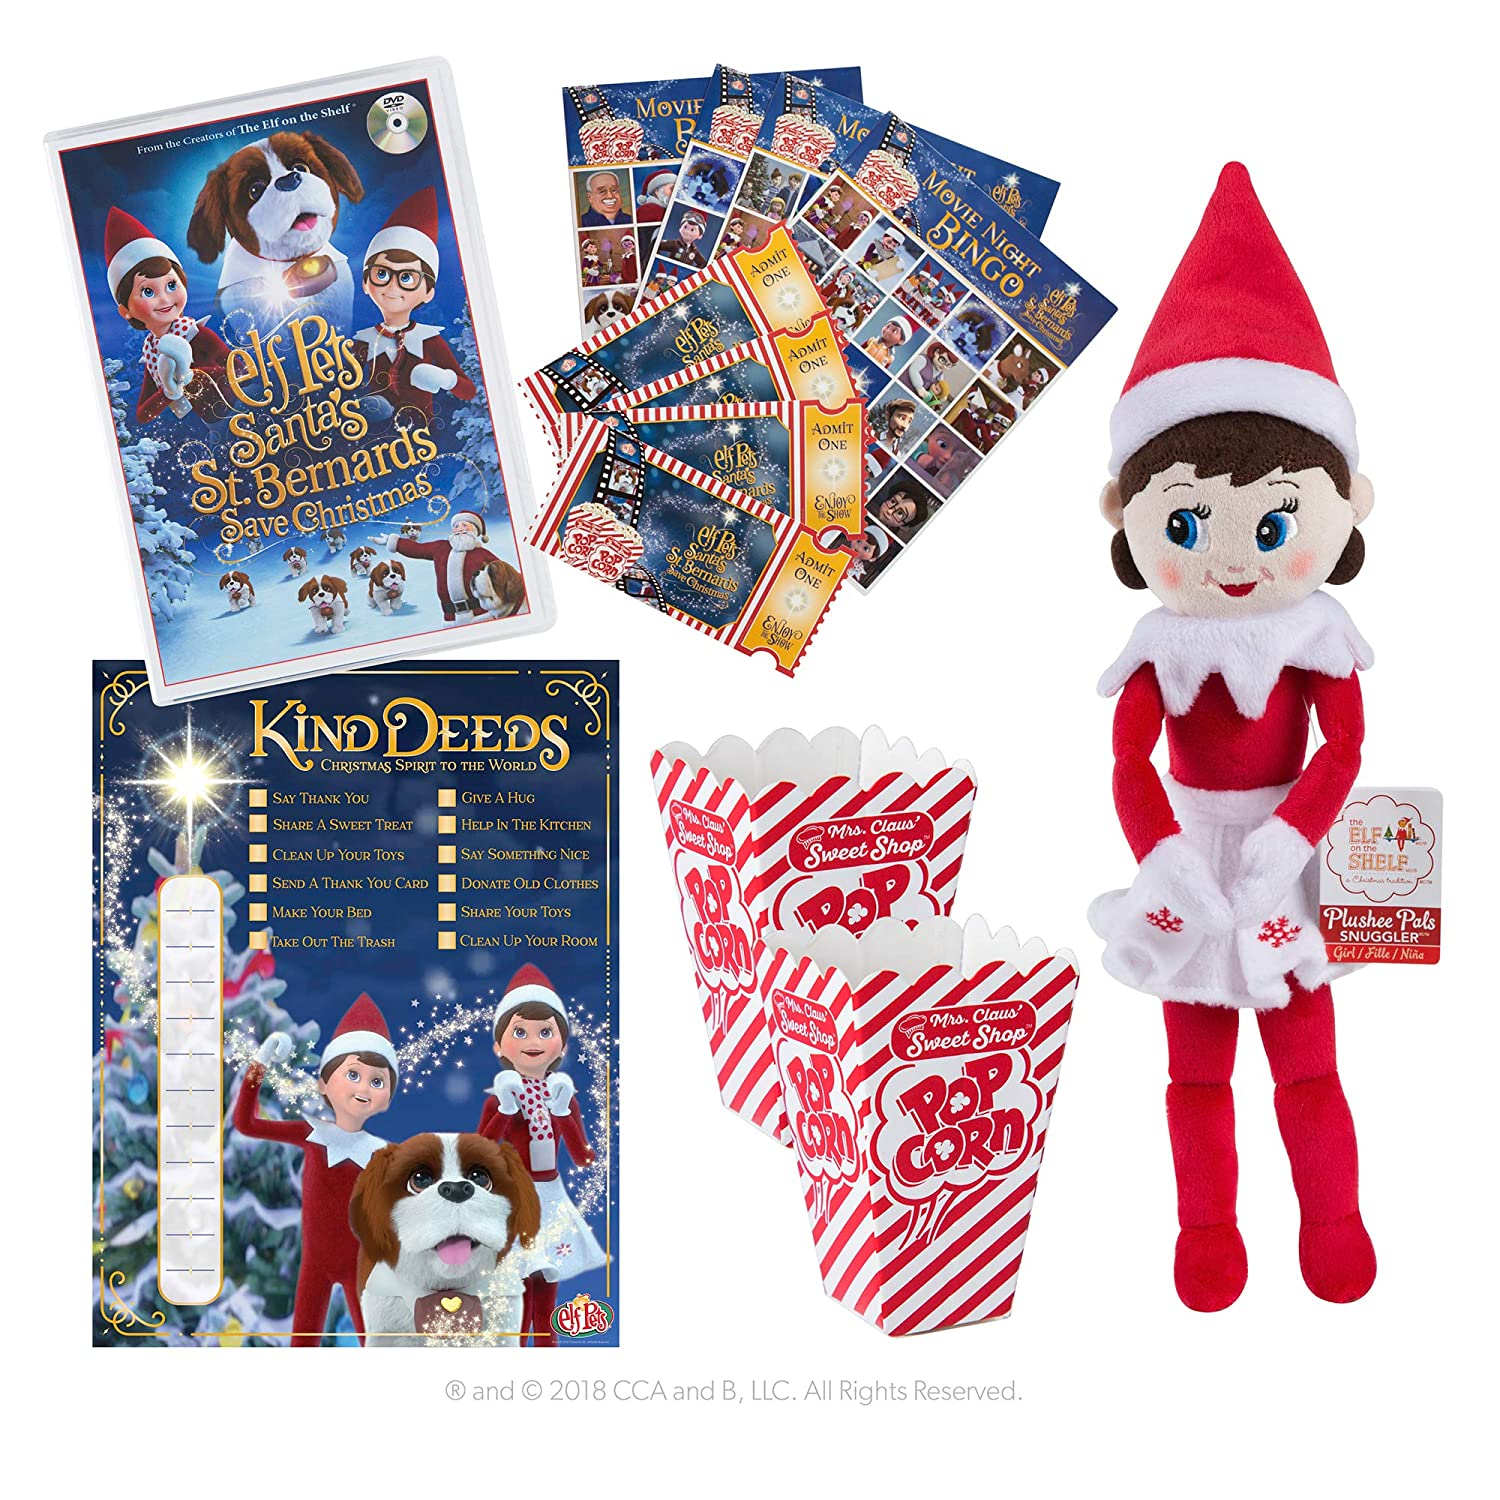 Amazon The Elf on the Shelf Festive Family Night with 2 DVDs